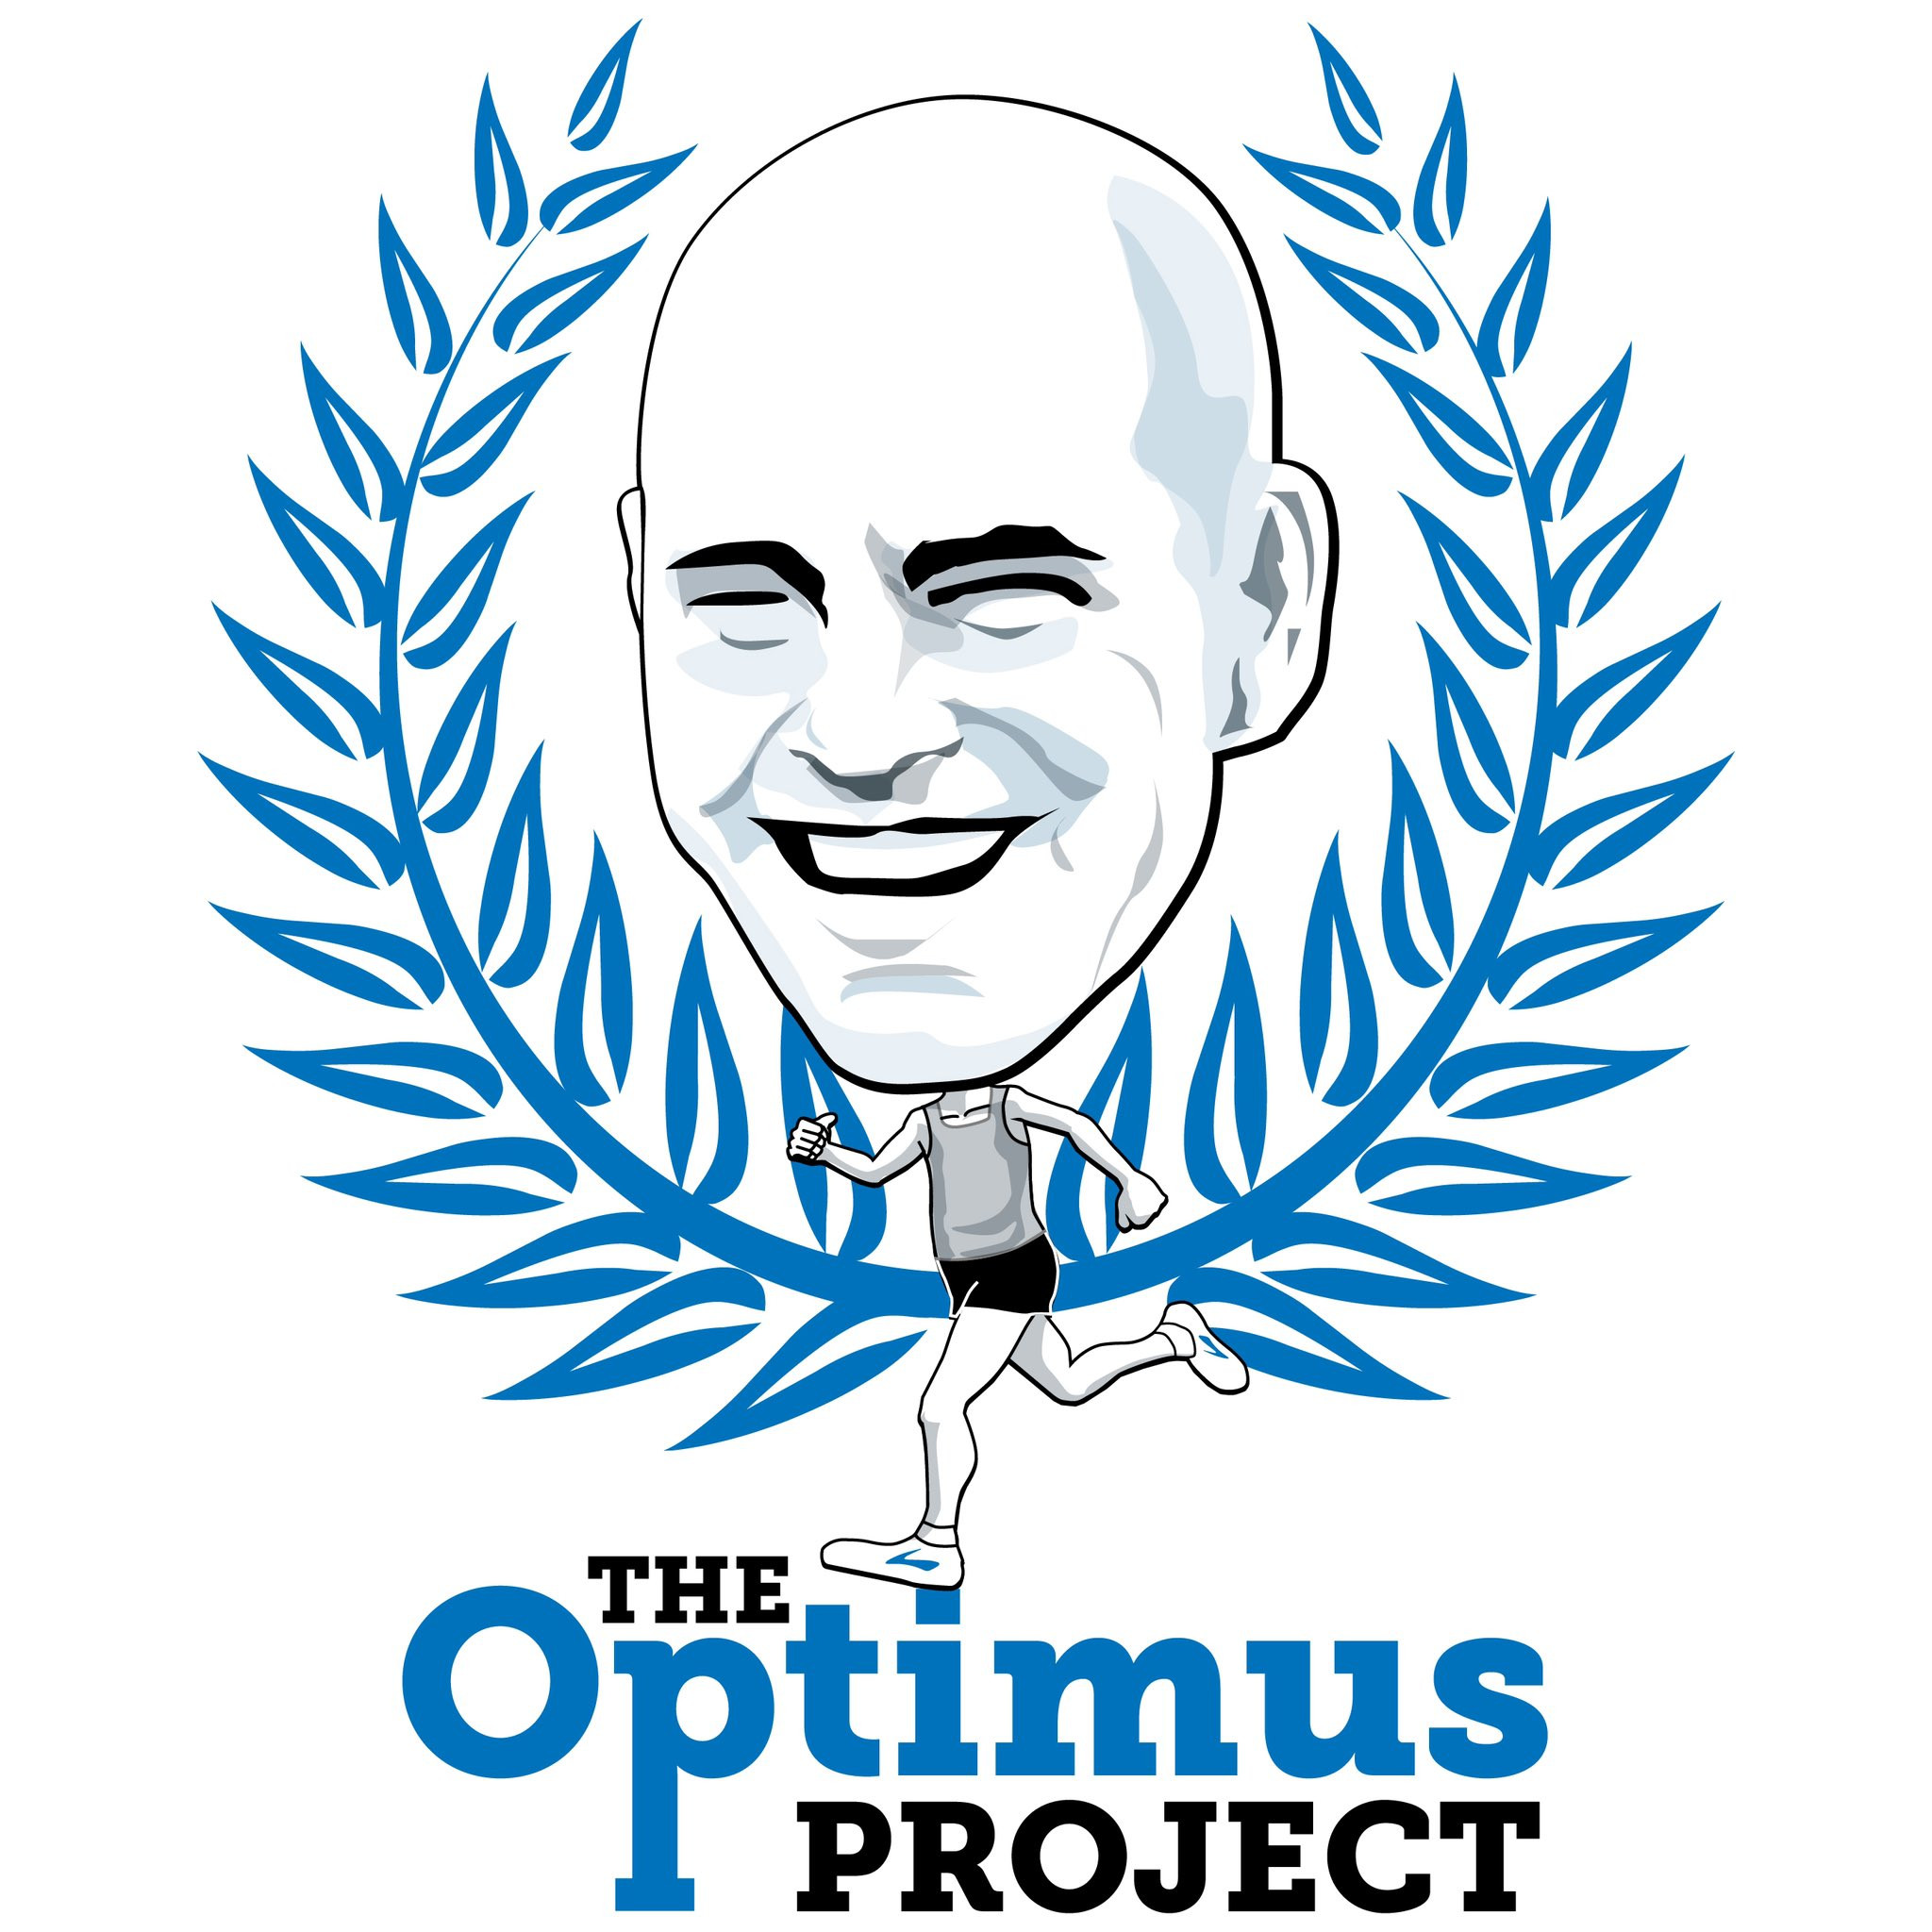 The Optimus Project